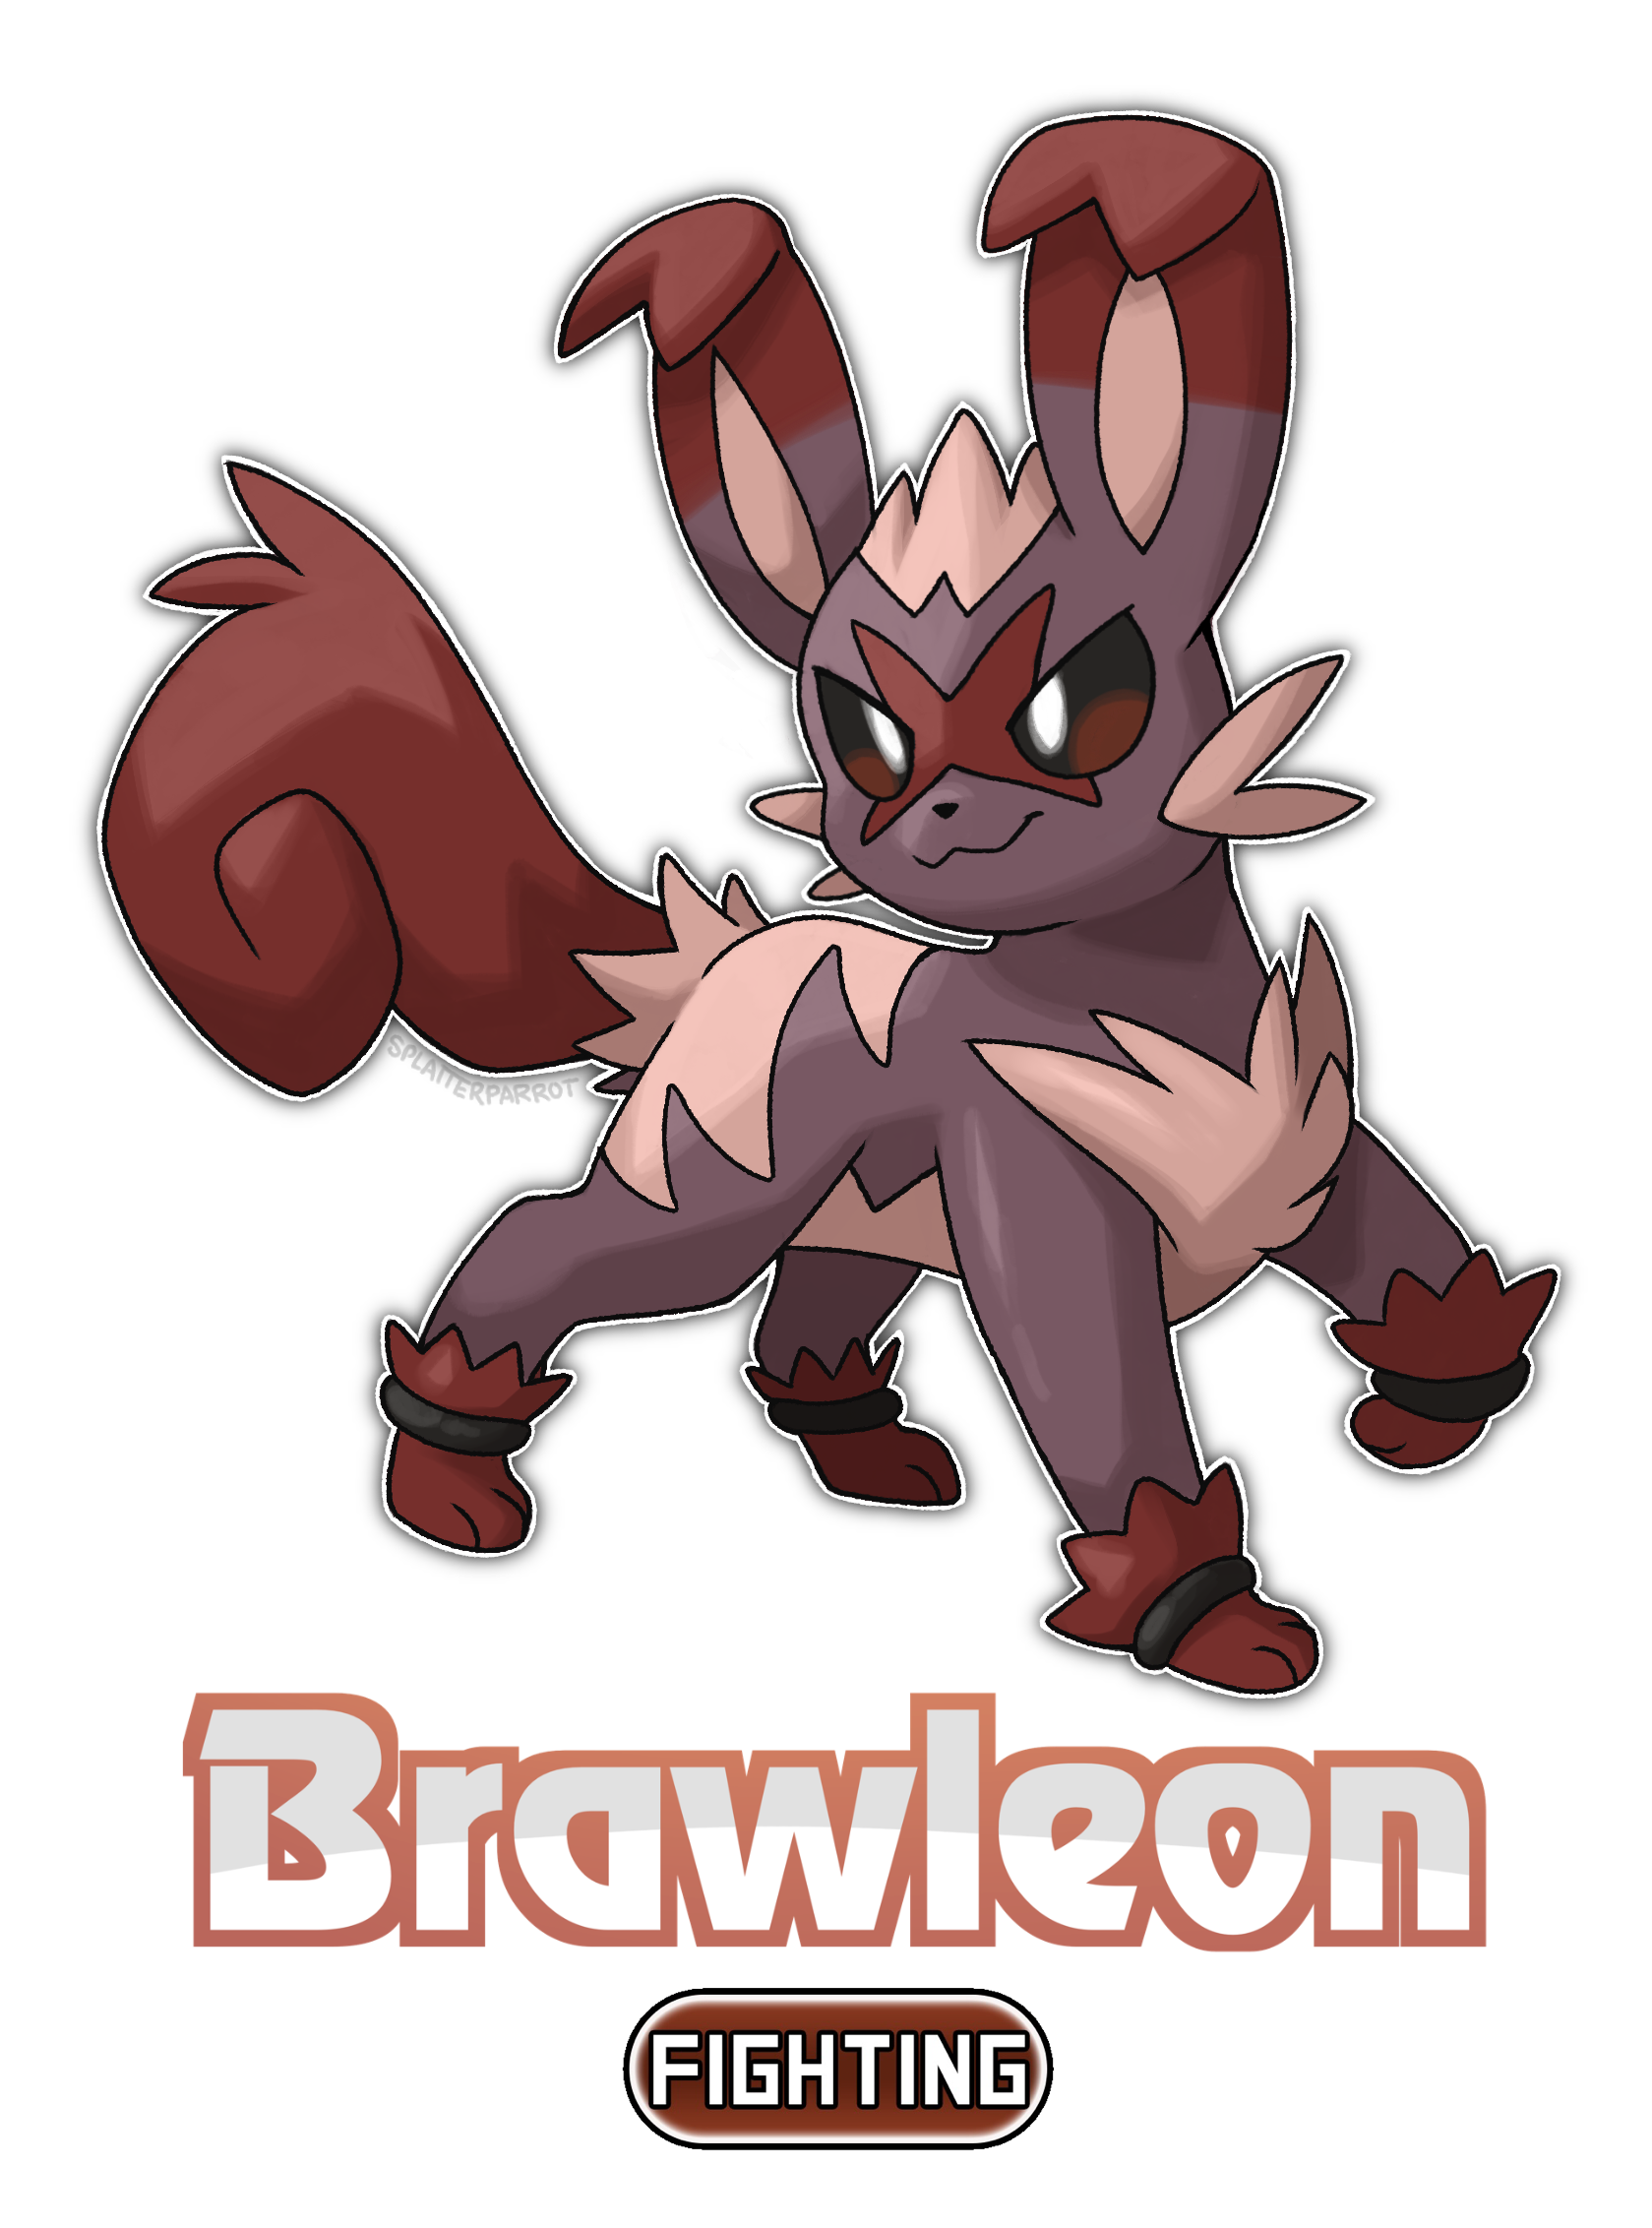 Brawleon! by SplatterParrot on DeviantArt